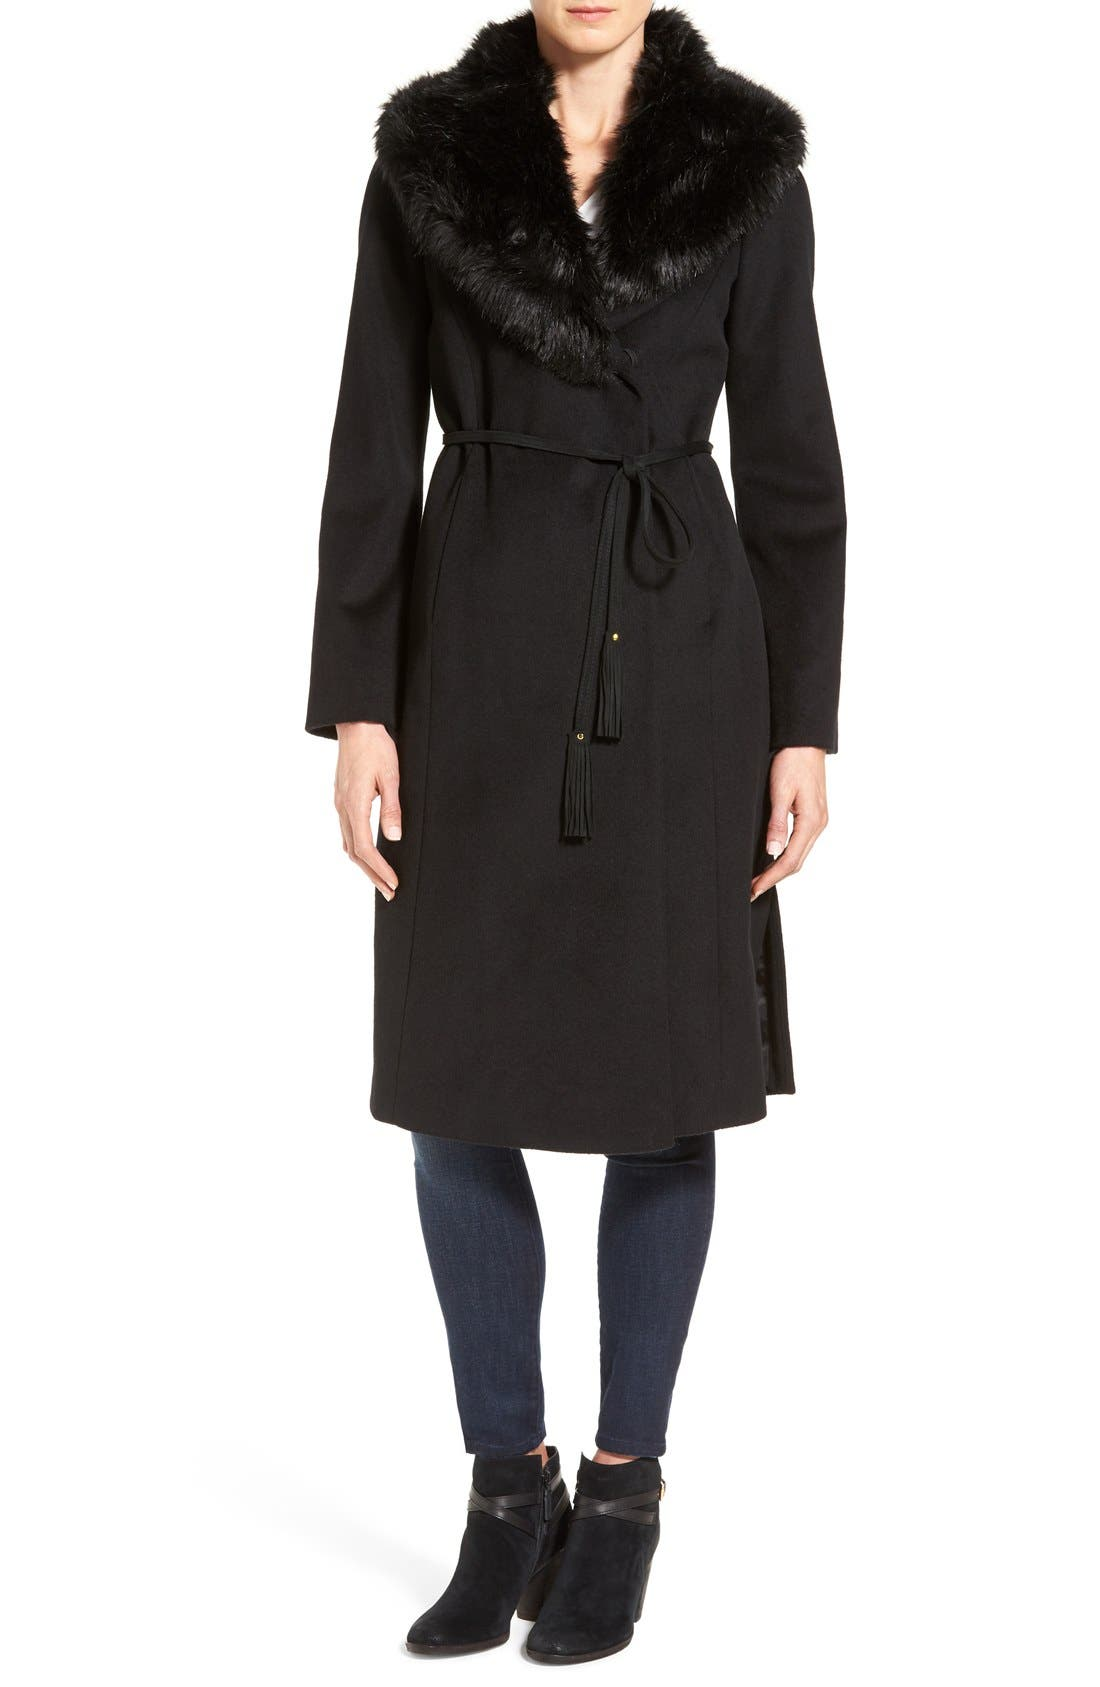 Alternate Image 1 Selected - Via Spiga Faux Fur Shawl Collar Wool Blend Wrap Coat